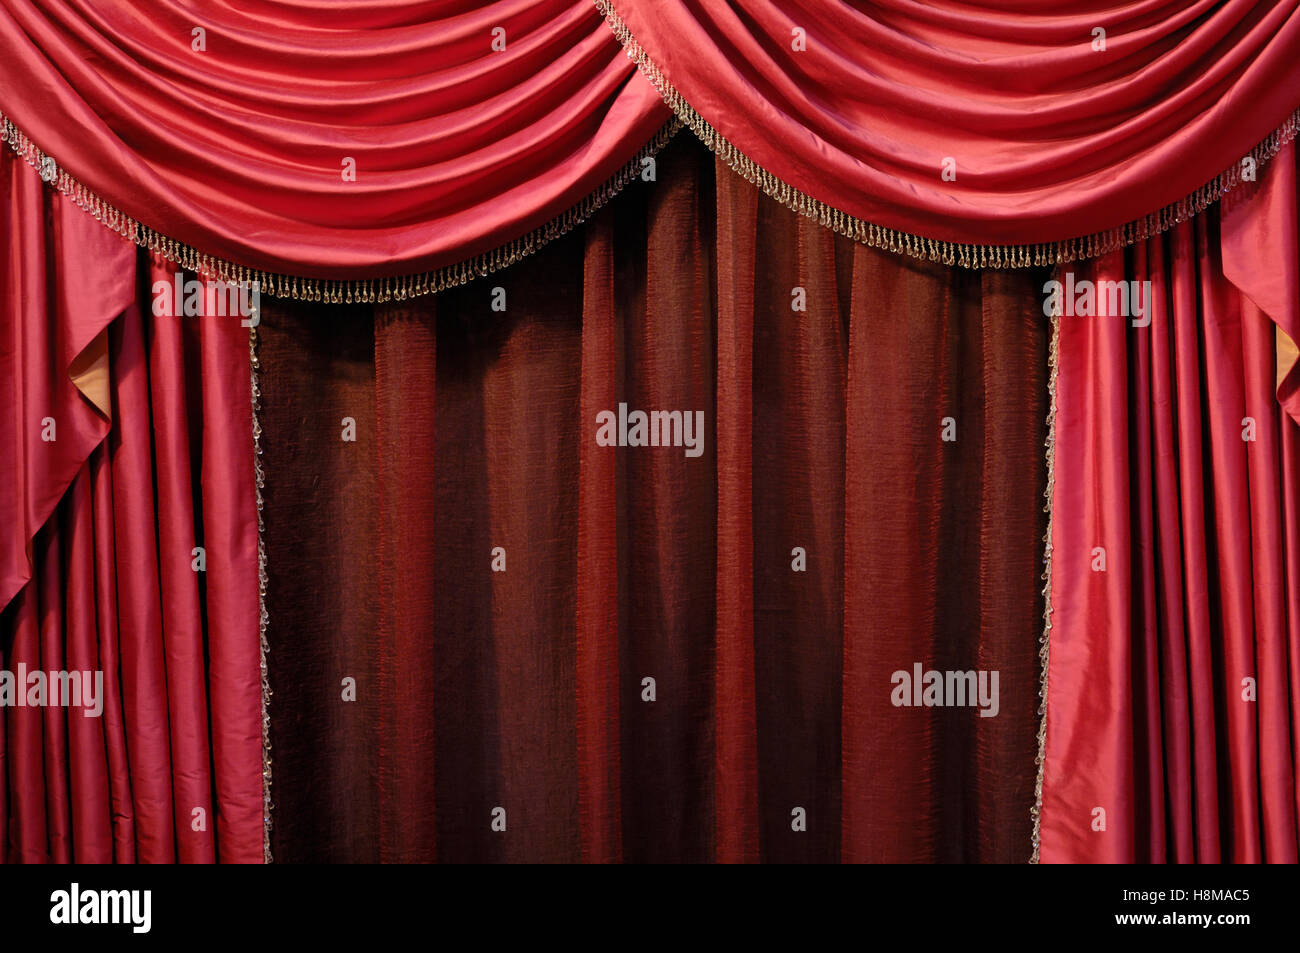 Red curtain, background - Stock Image